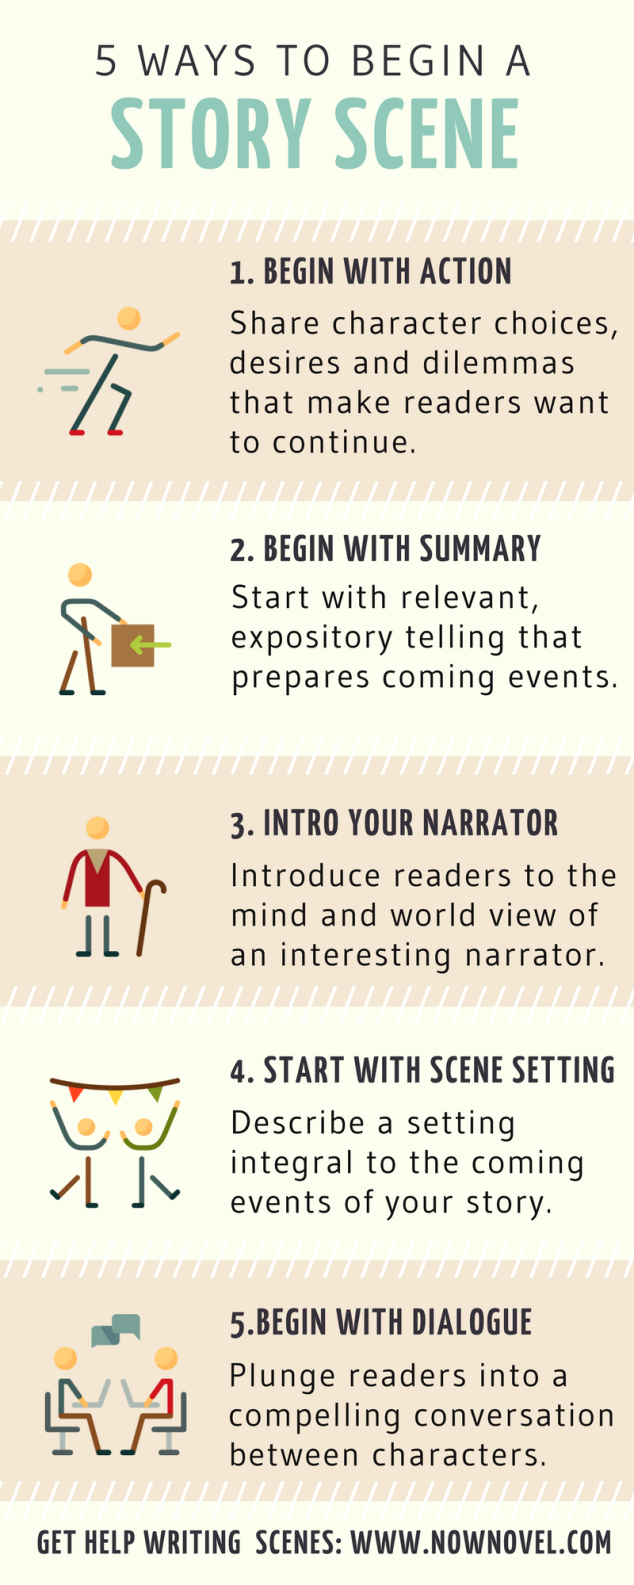 Infographic-5-ways-to-begin-a-scene_NowNovel